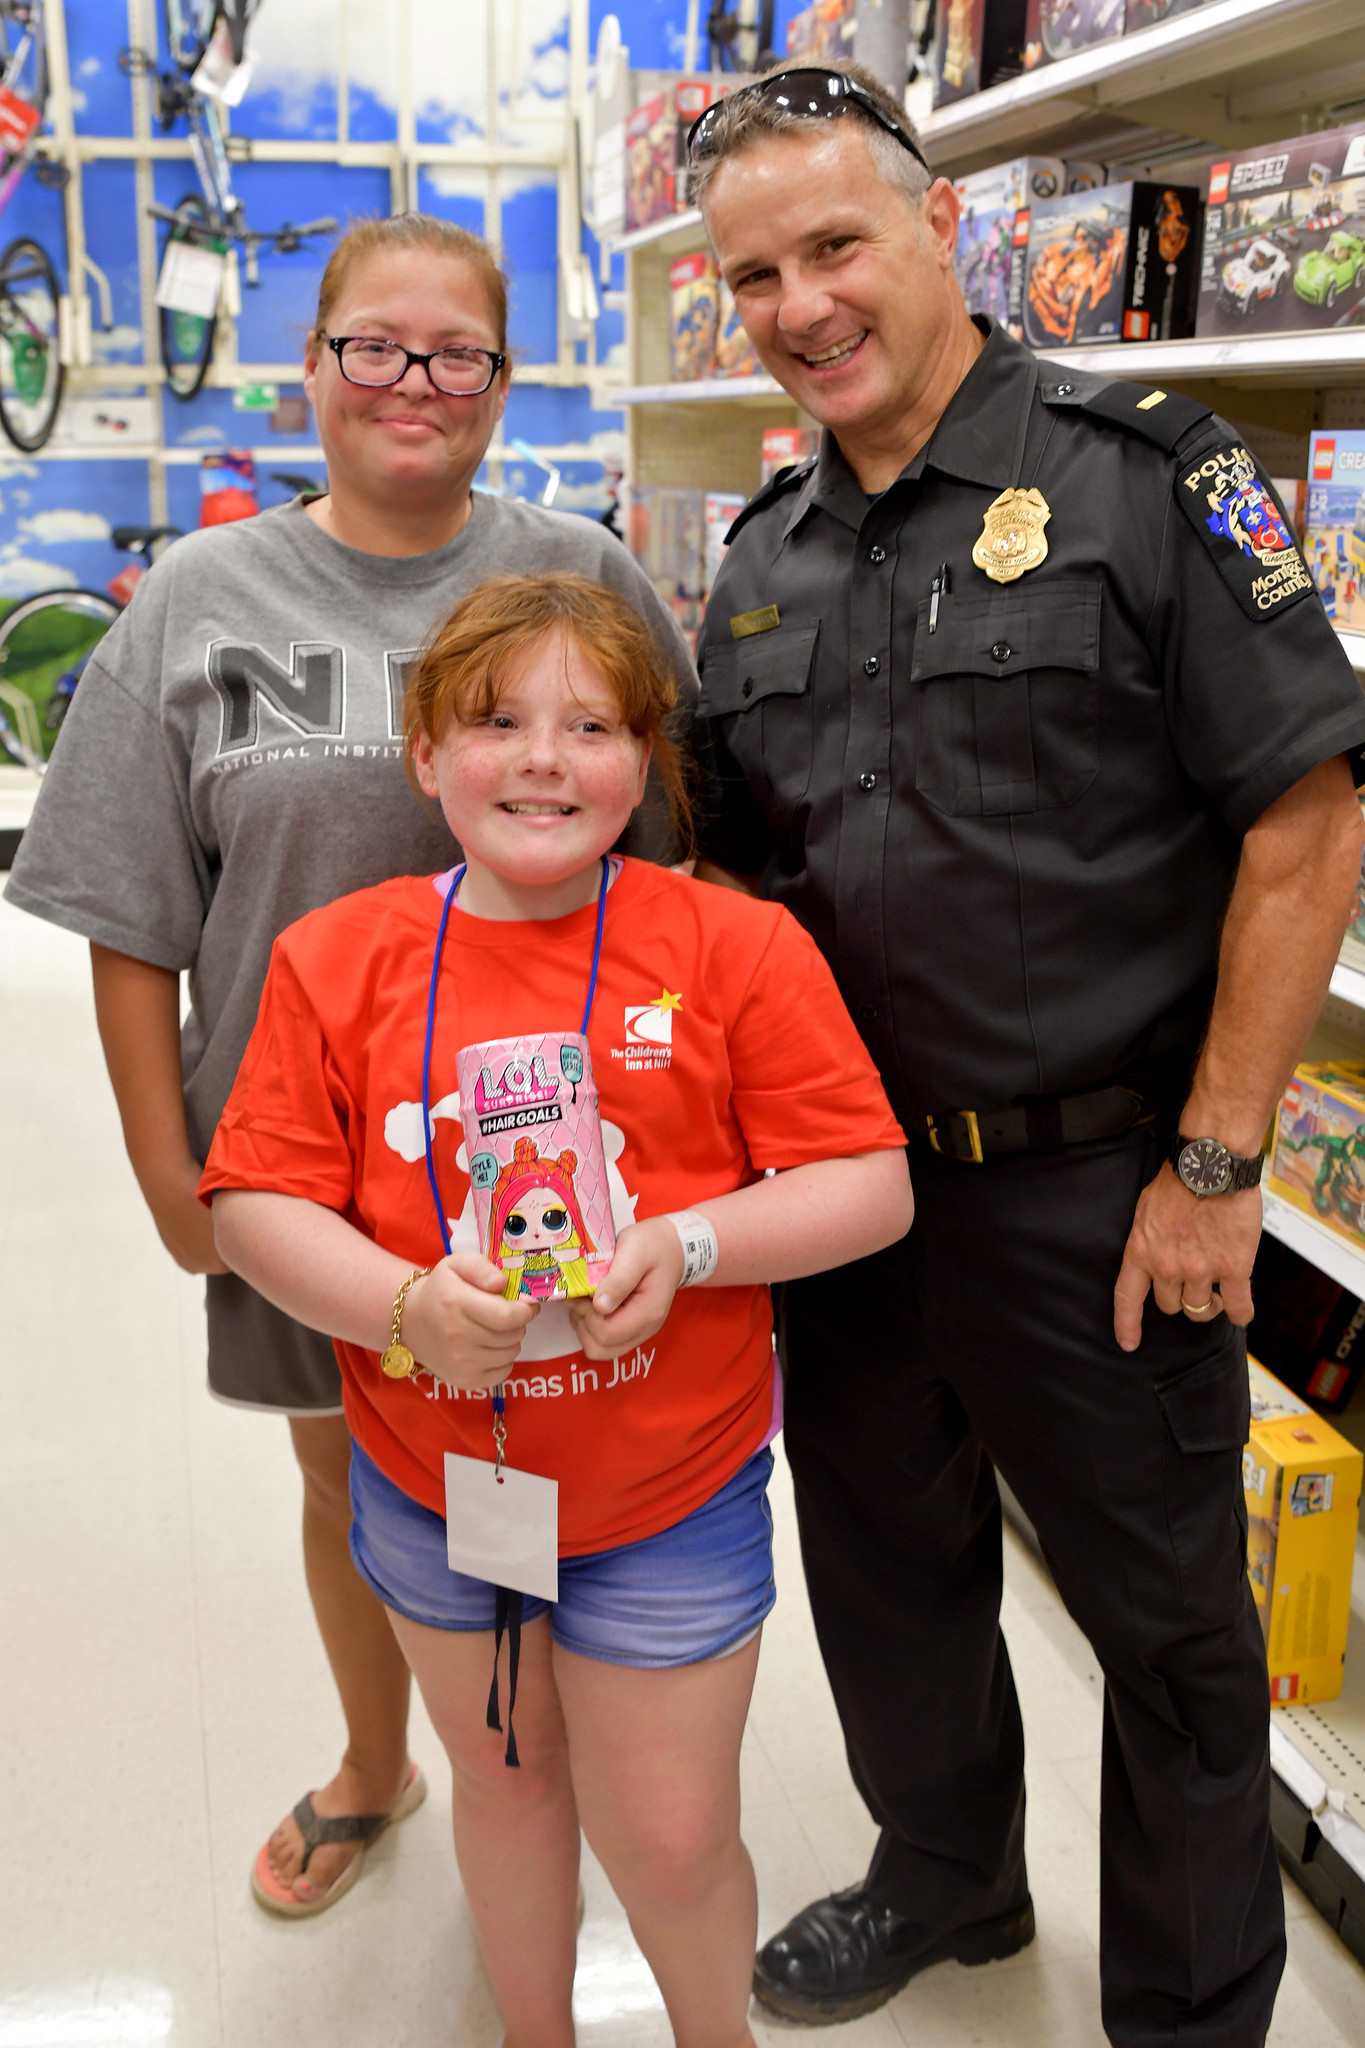 Inn residents Avery and Julie pose with Montgomery County Police Officer David McBain, who helps organize the yearly Christmas in July event